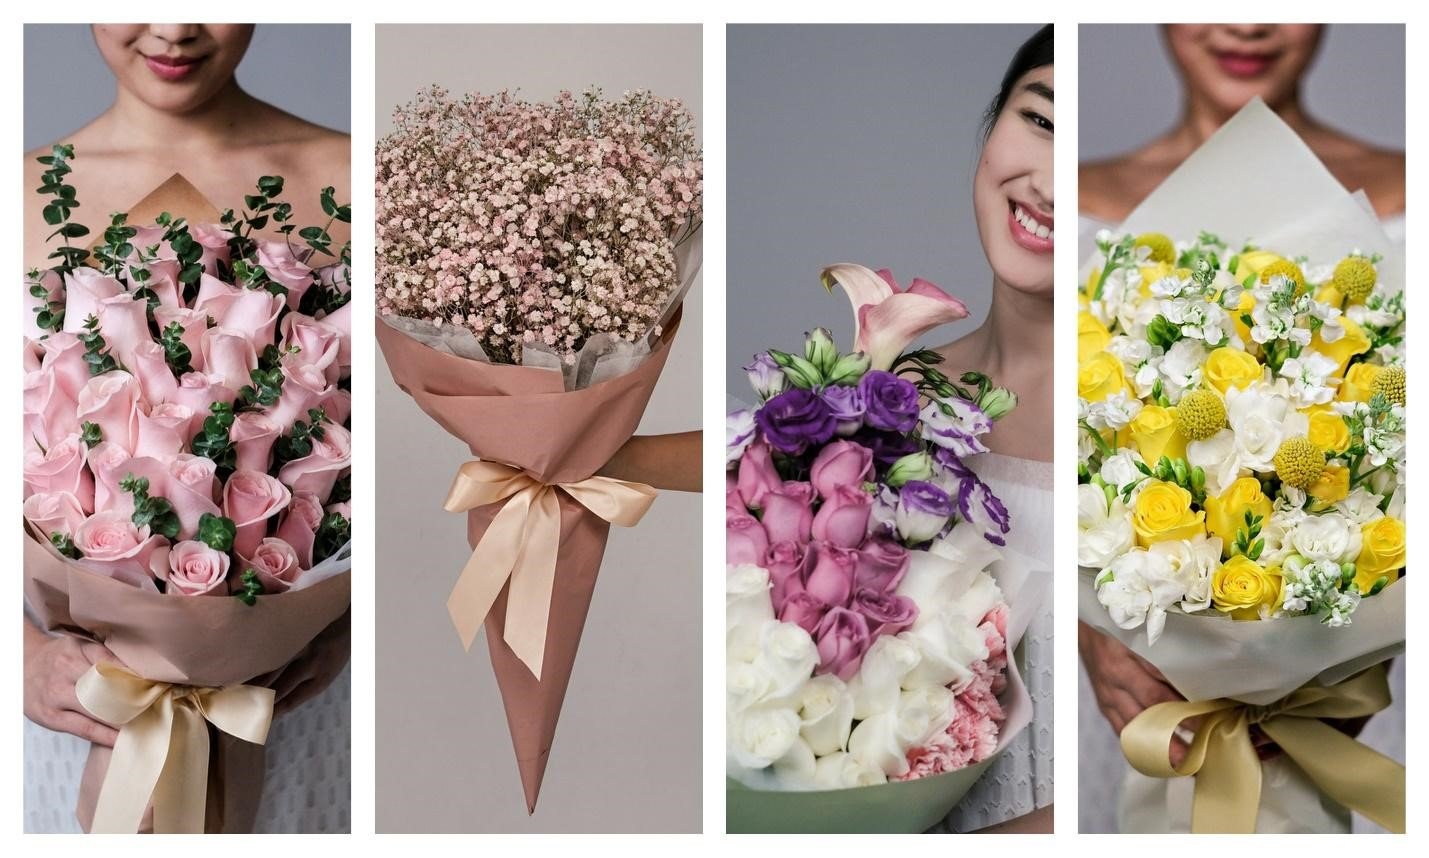 [UPDATED] The Ten Best Florists in Singapore 2017 - Alvinology